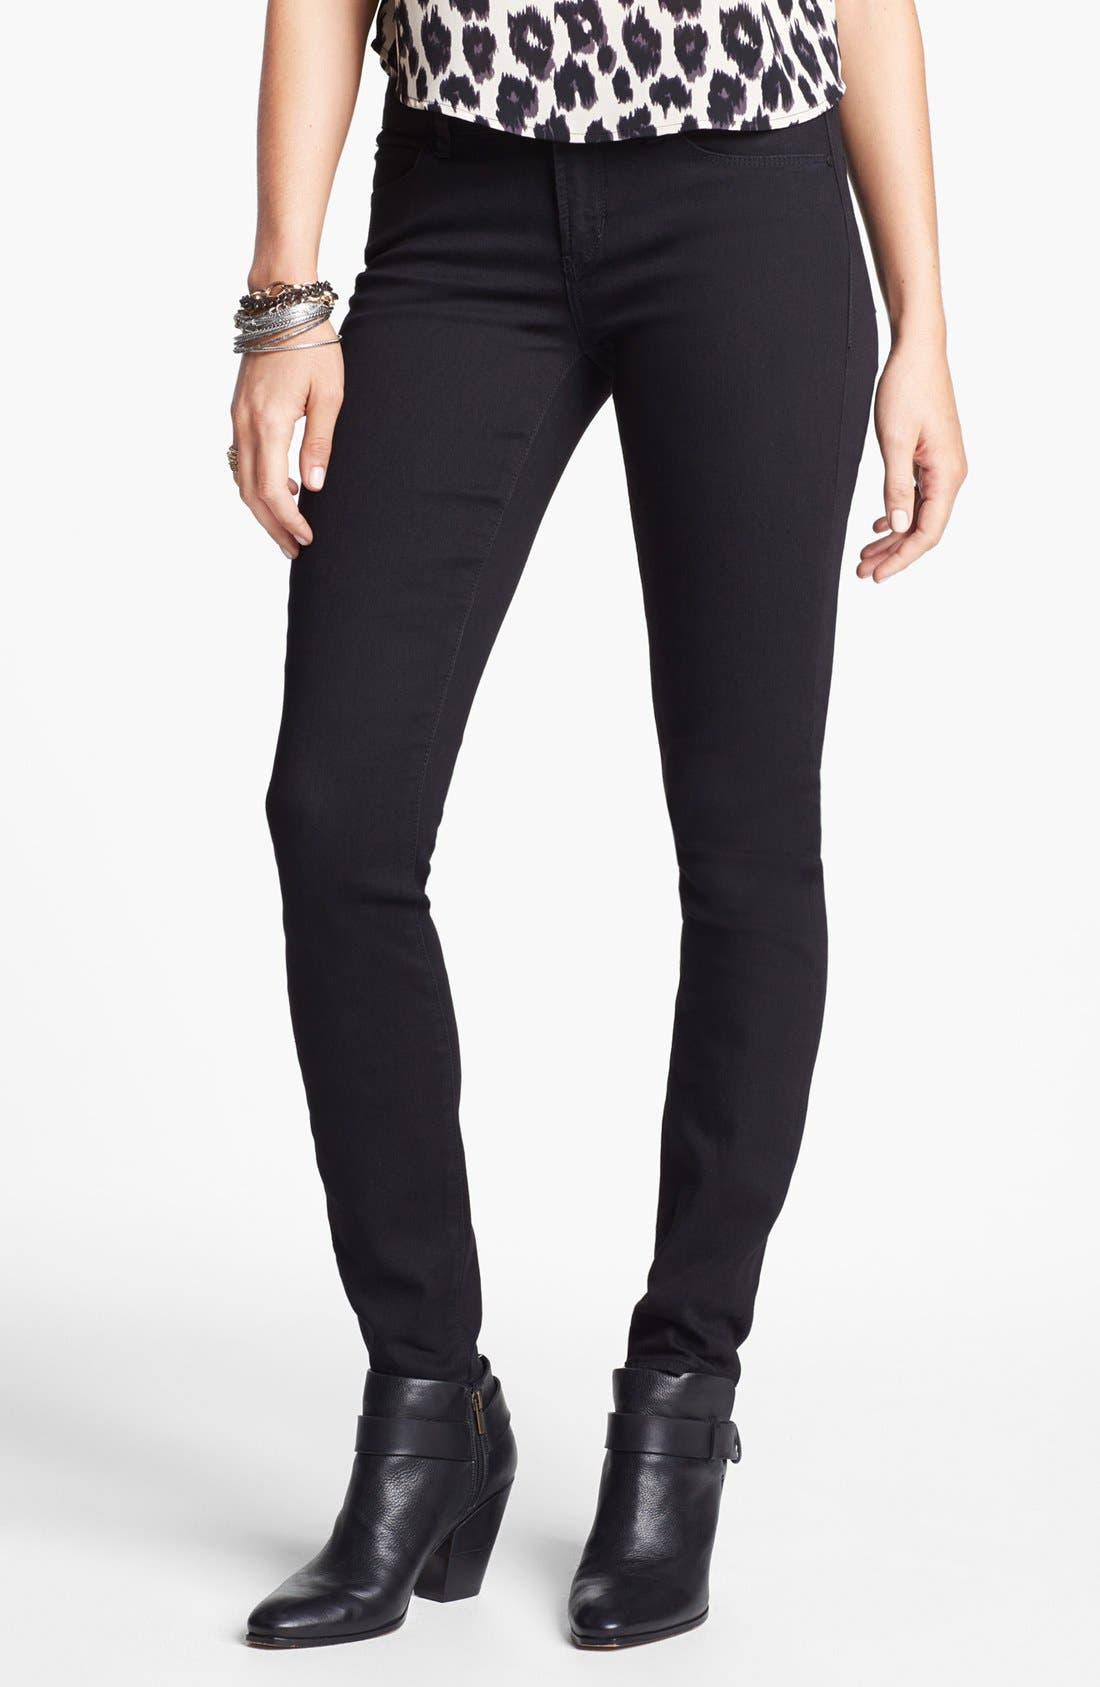 Alternate Image 1 Selected - Articles of Society 'Mya' Skinny Jeans (Blackout) (Juniors)